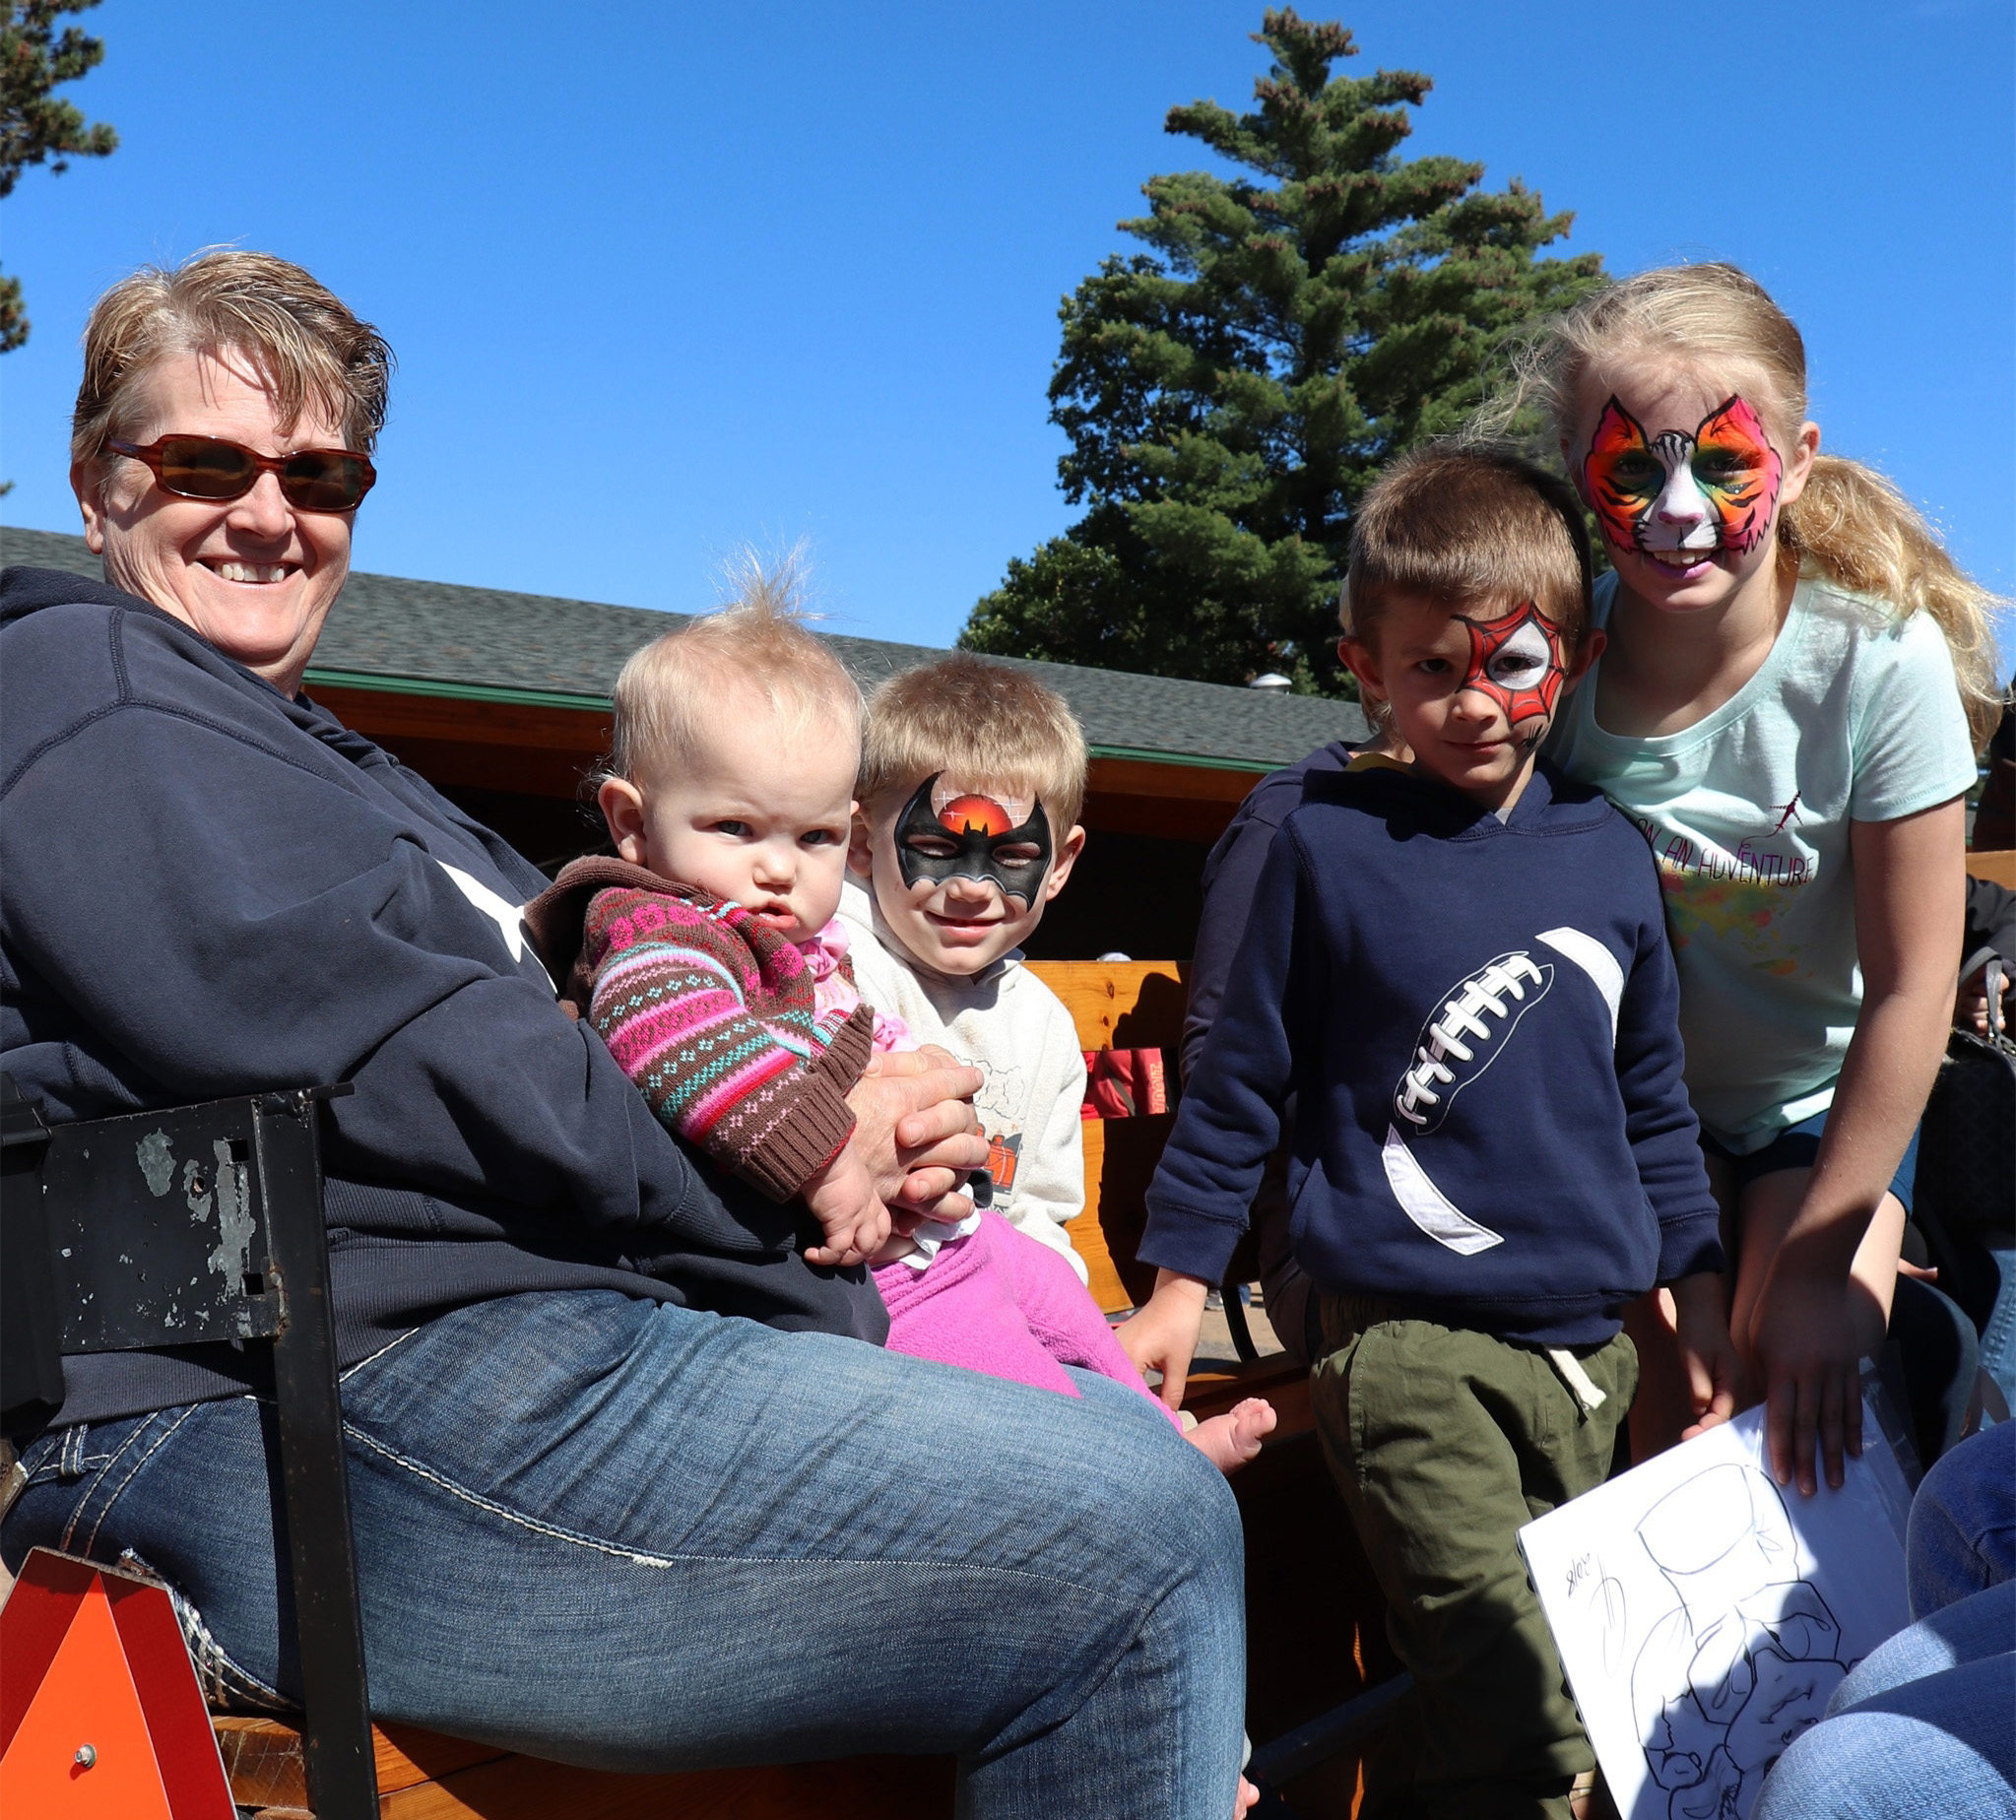 All smiles from these kids who enjoyed the horse drawn wagon ride at Colorama in St. Germain. Kim Johnson photo